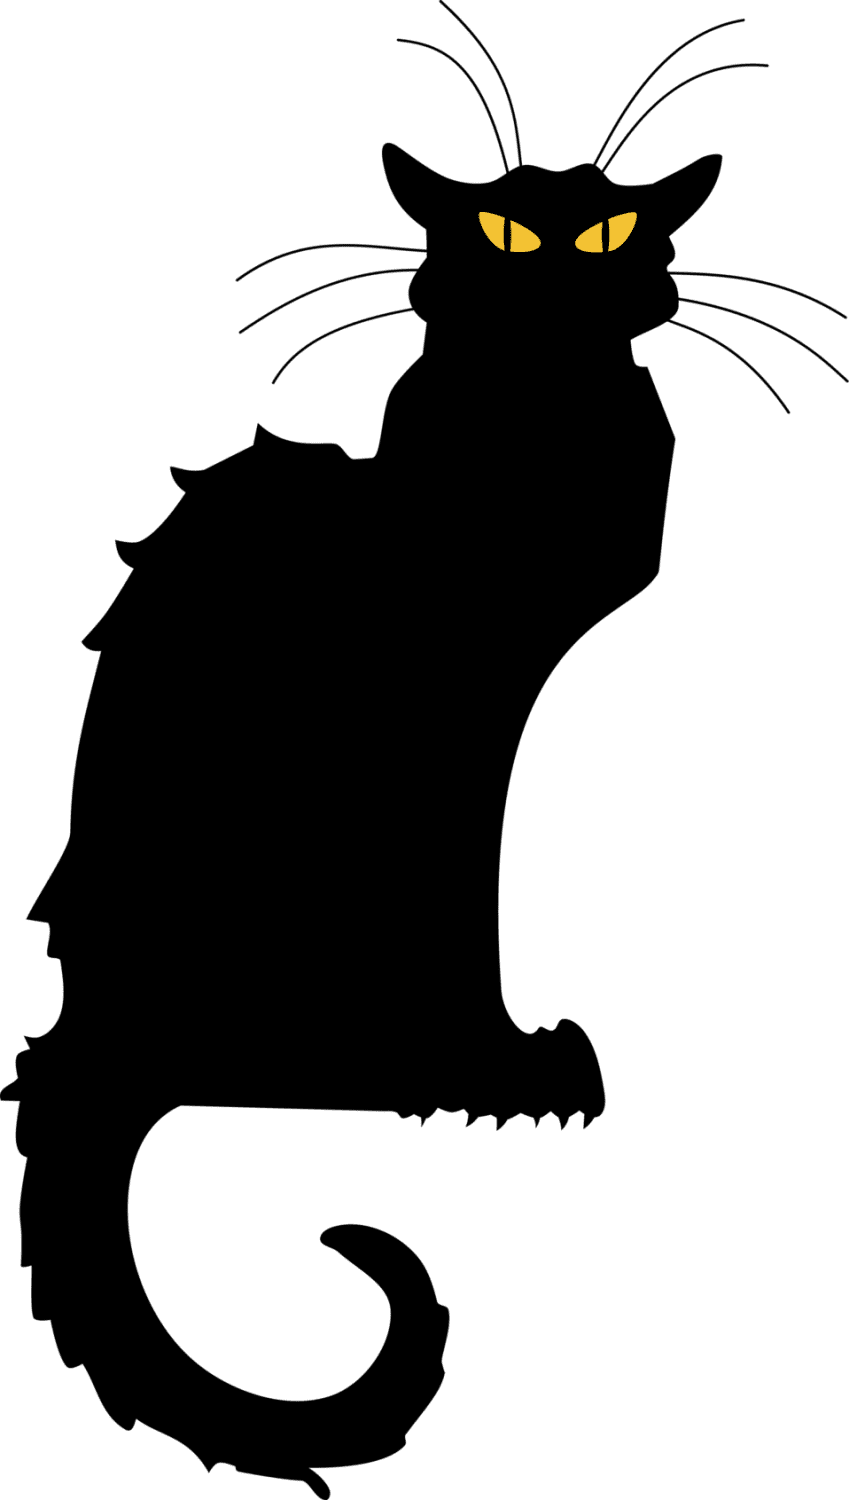 Uncategorized Halloween Symbol halloween symbols what do they mean check out our spooky black cat available on website now to add a creepy take the traditional symbol in your decorations this year